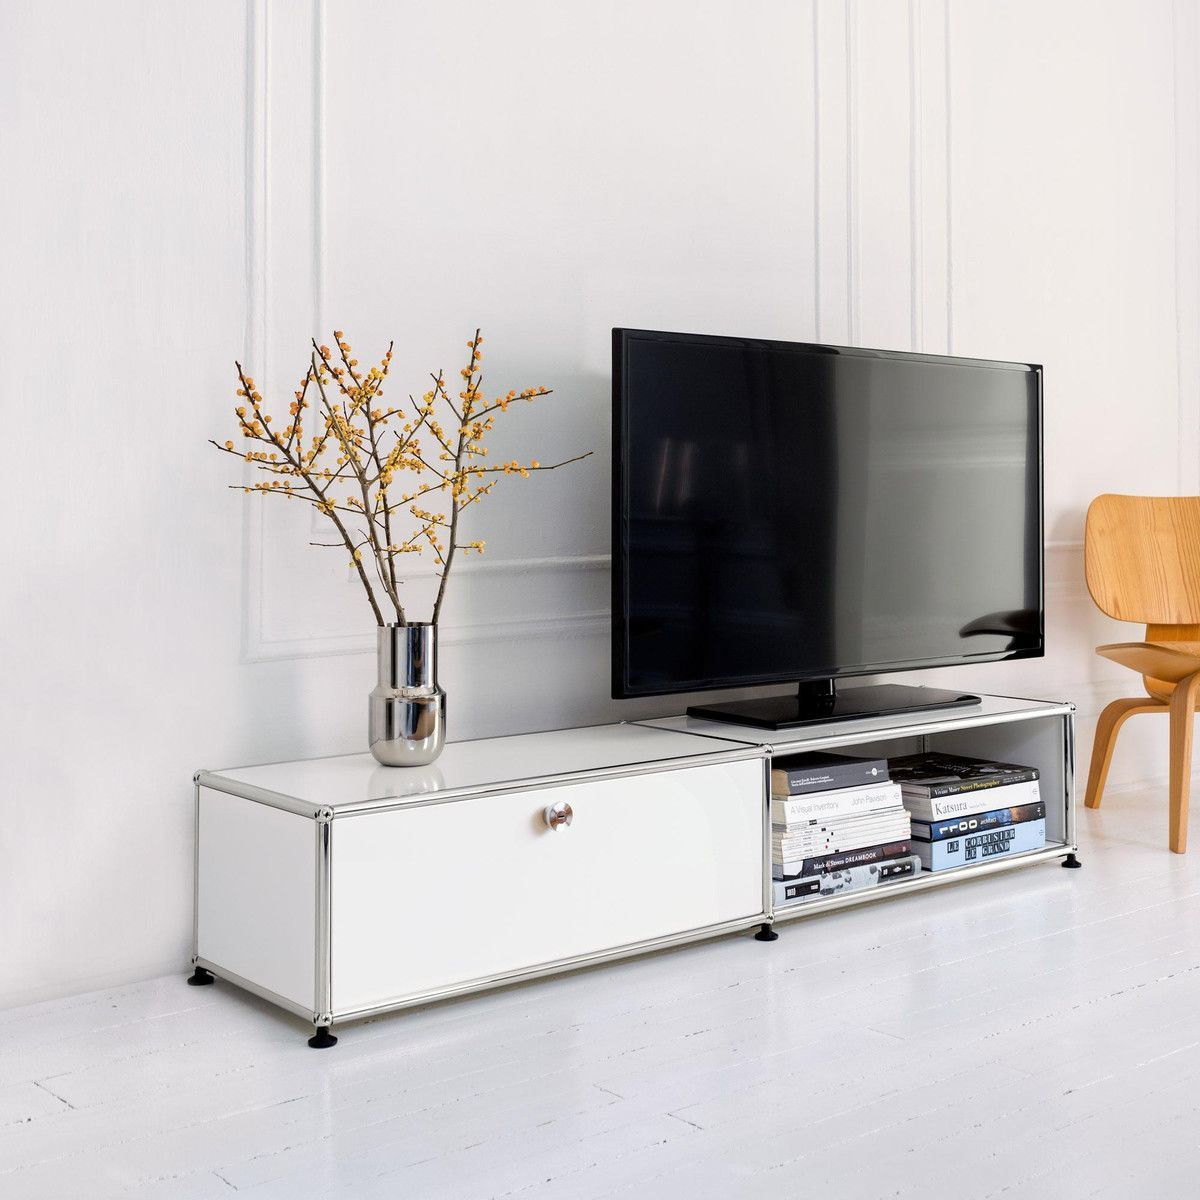 usm sideboard pour tv hi fi h 29cm usm haller. Black Bedroom Furniture Sets. Home Design Ideas